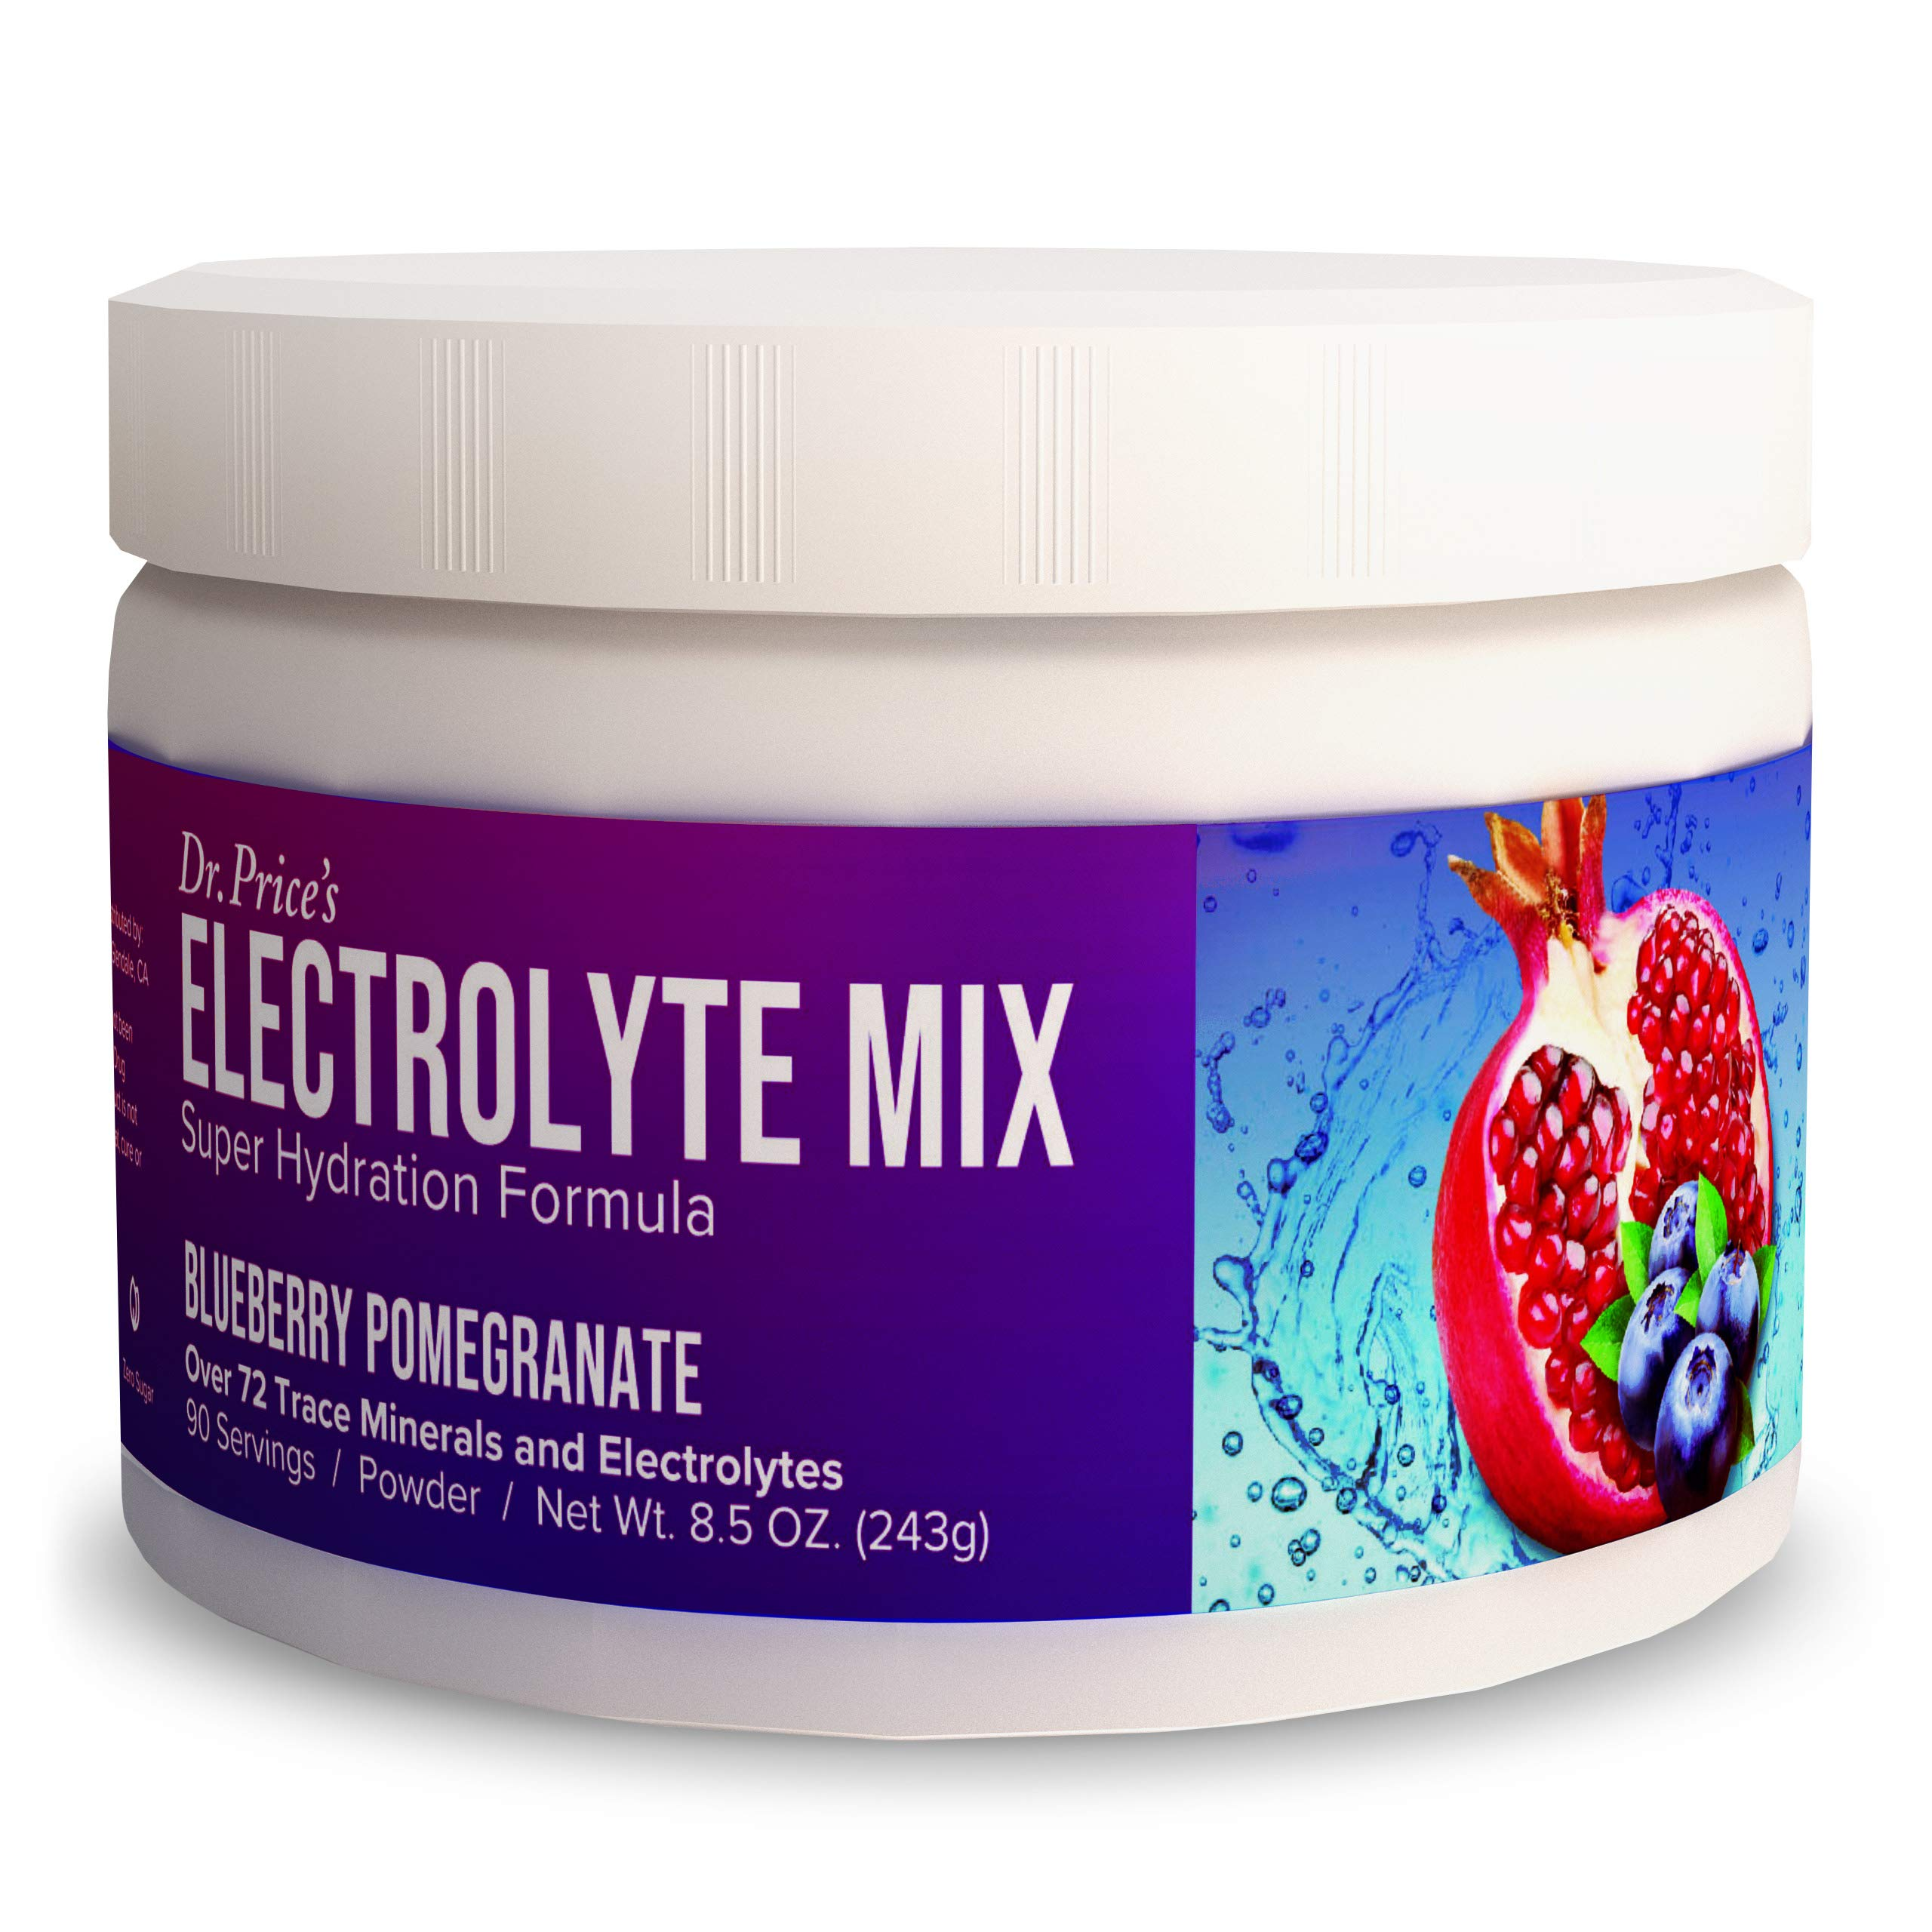 Electrolyte Mix Supplement Powder, 90 Servings, 72 Trace Minerals, Potassium, Sodium, Electrolyte Replacement Keto Drink   Blueberry-Pomegranate Flavor   Dr. Price's Vitamins, No Sugar, Vegan Non-GMO by Dr. Price's Vitamins